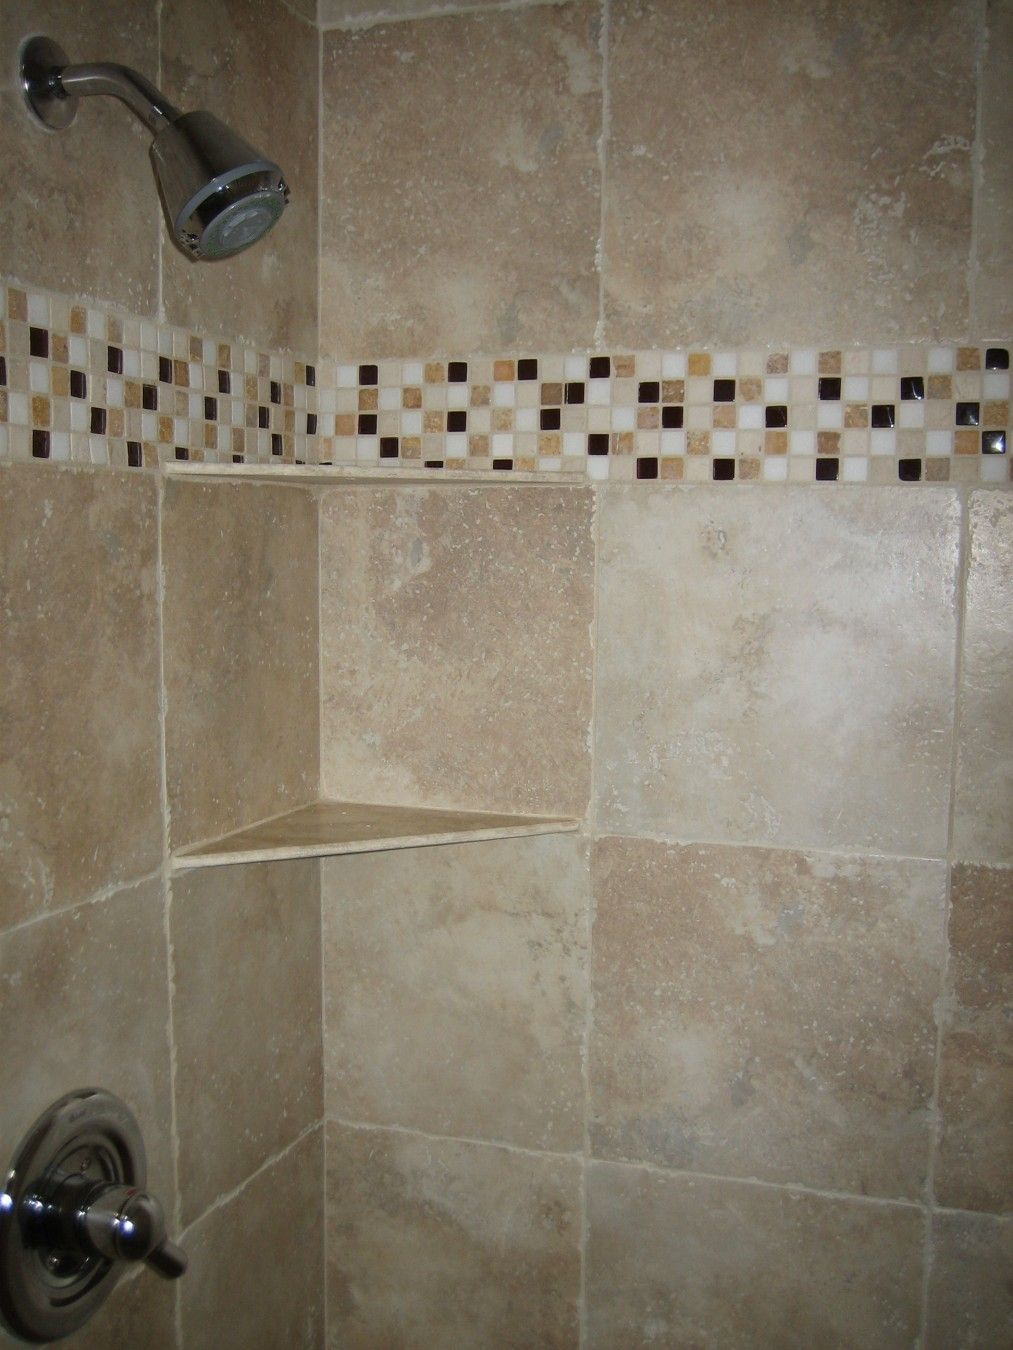 bahtroom: a shower space with light brown tiles for walls